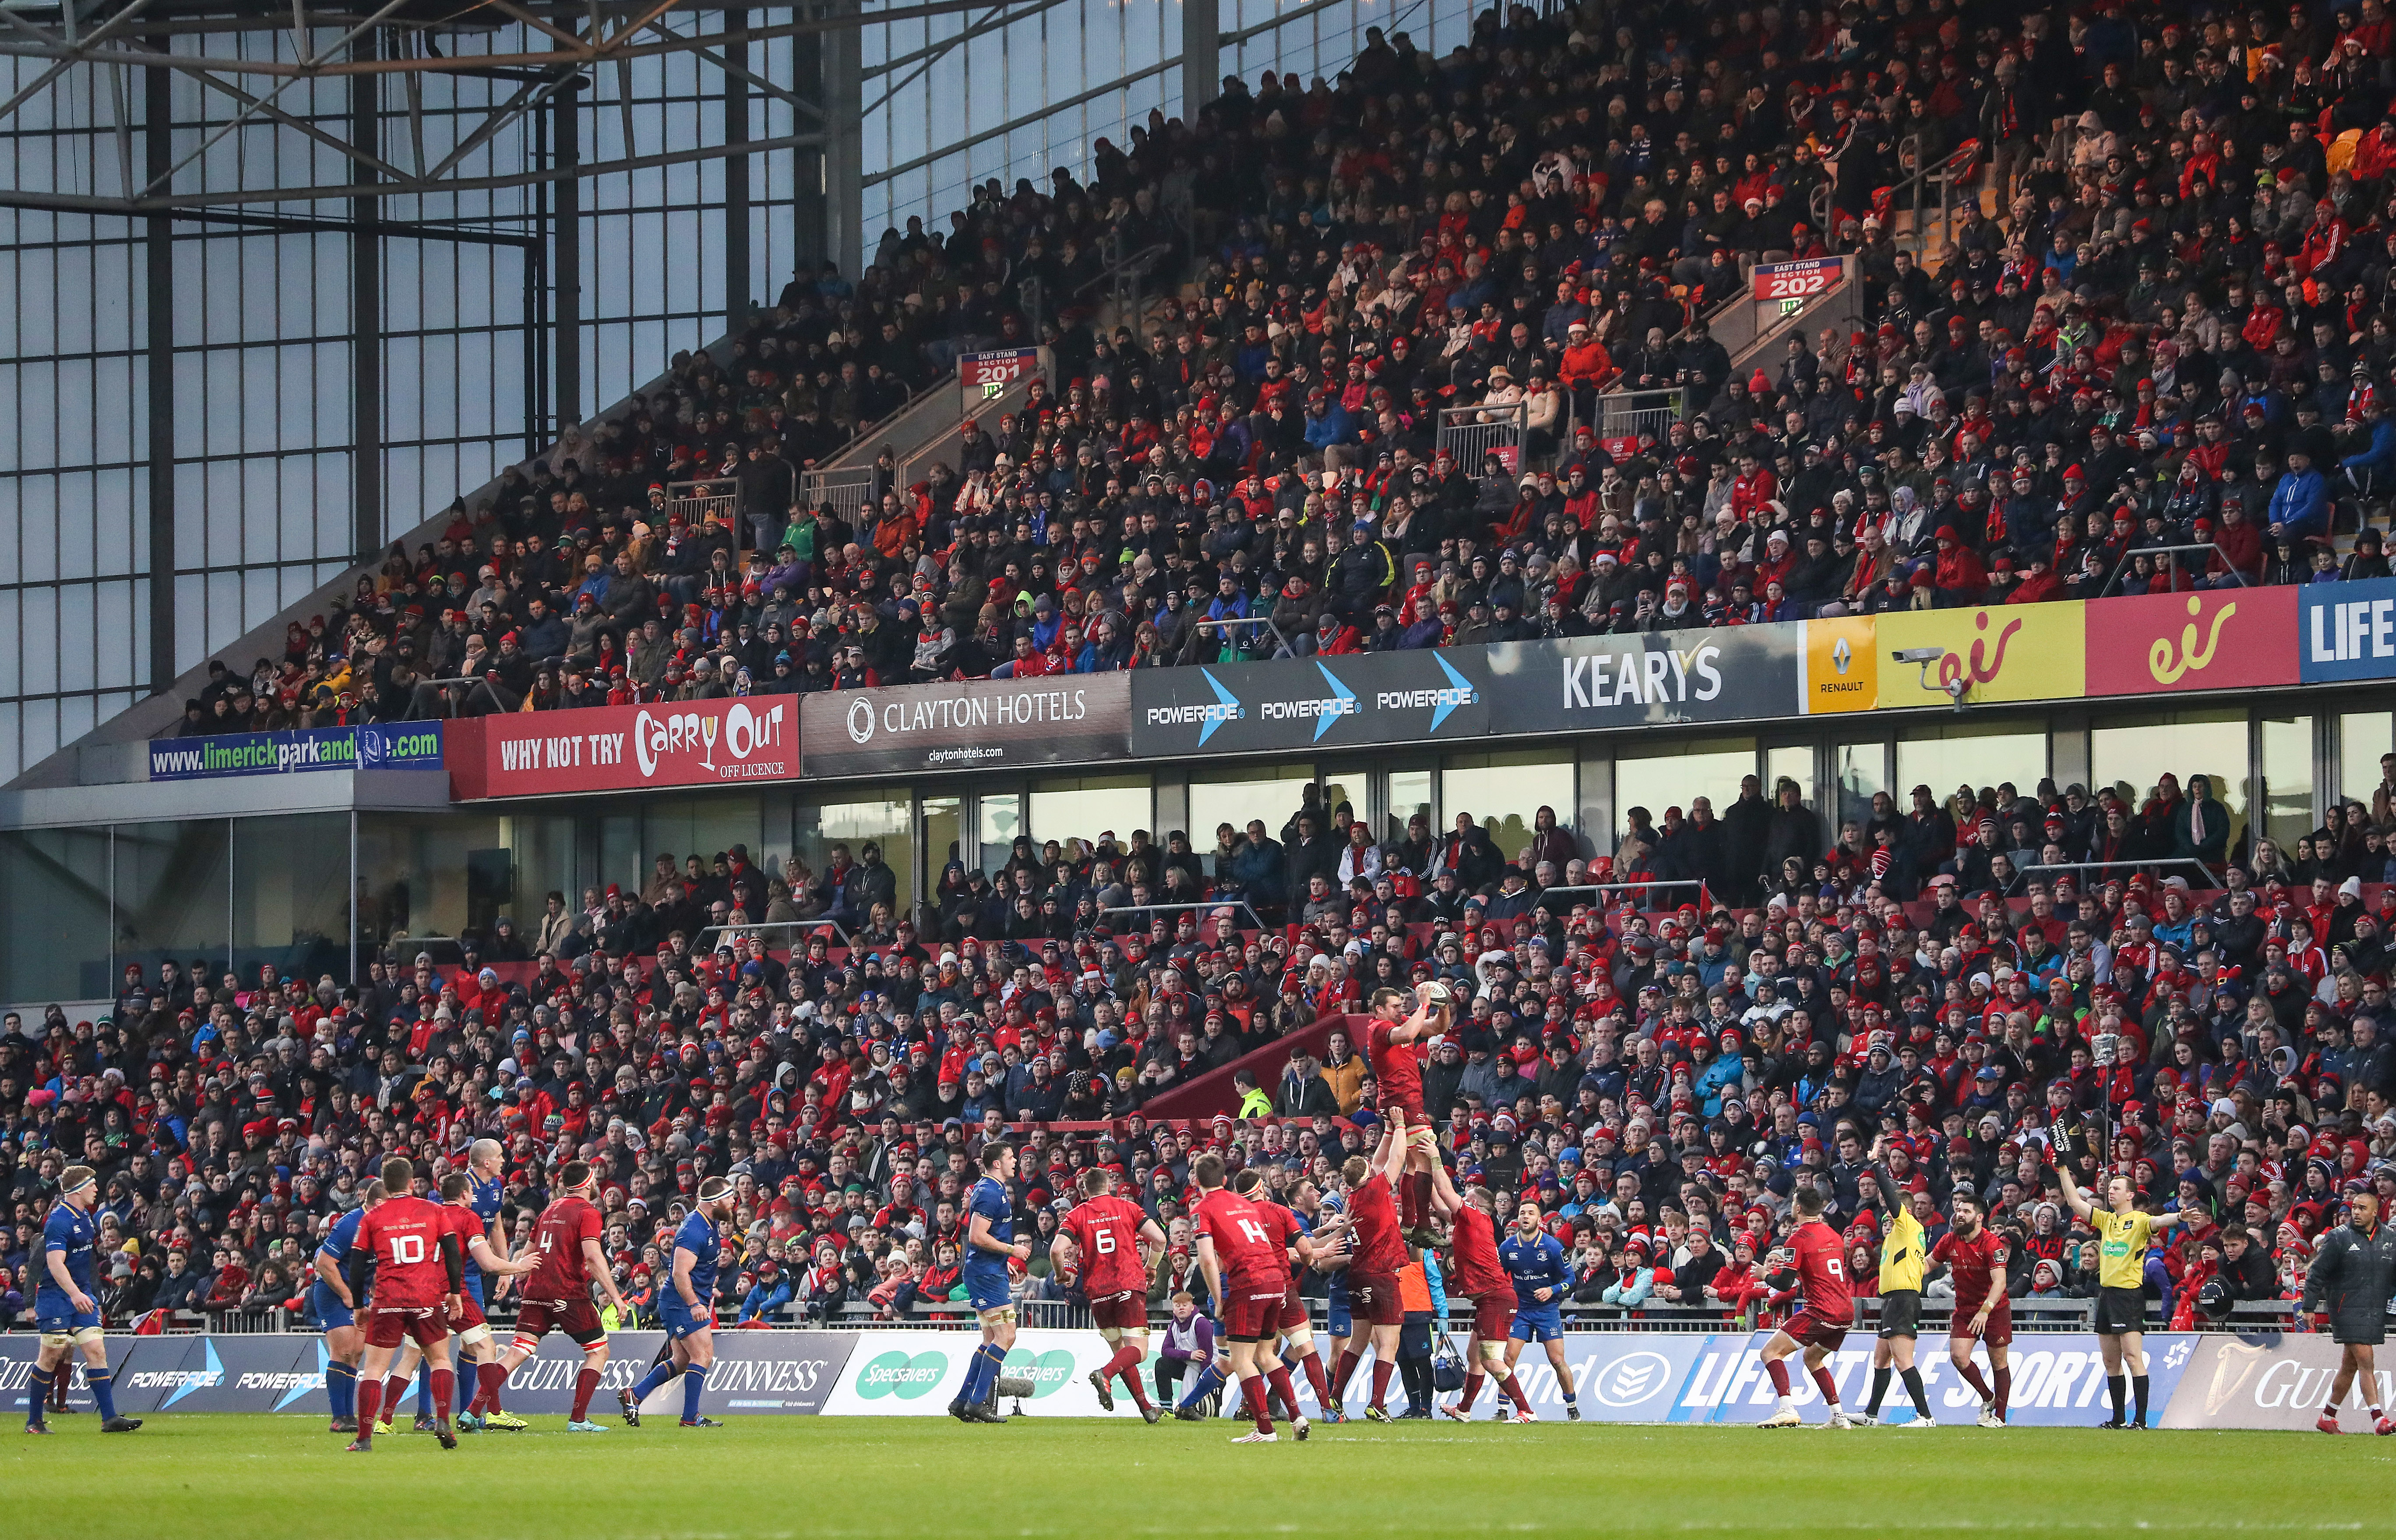 A view of a sold out Thomond Park during Munster v Leinster